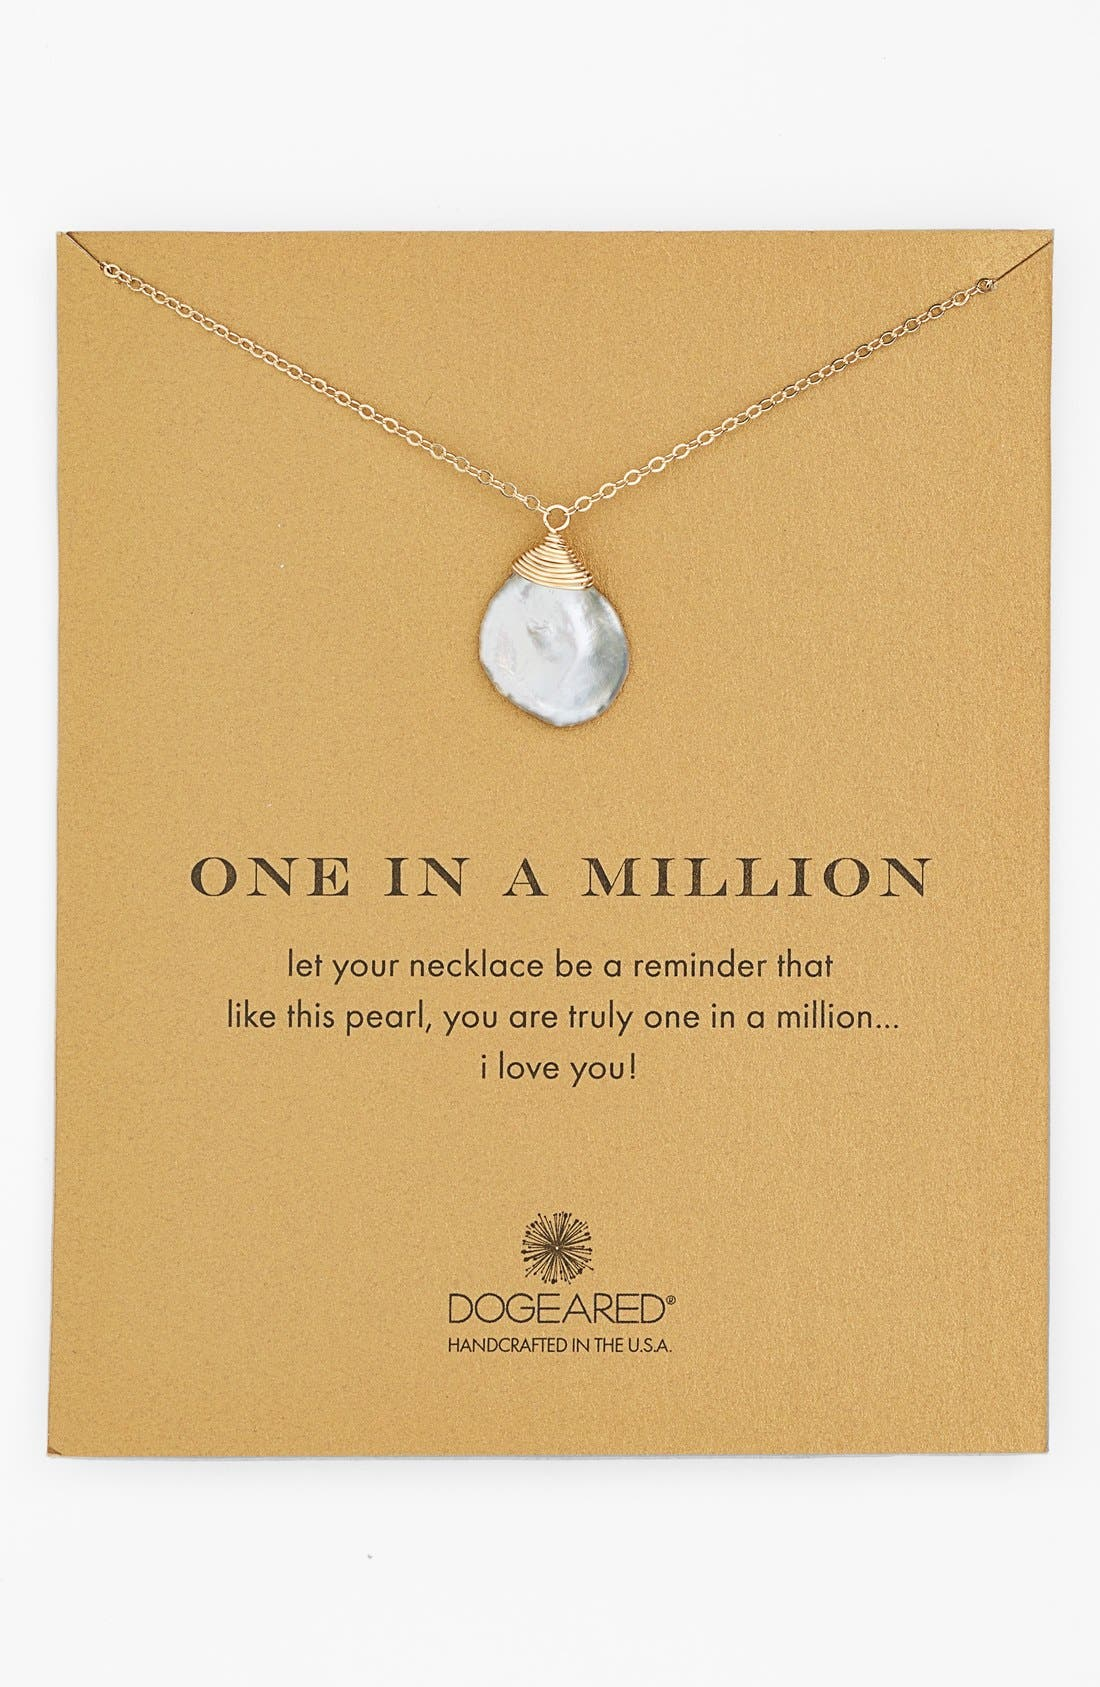 Alternate Image 1 Selected - Dogeared 'One in a Million' Keshi Pearl Necklace